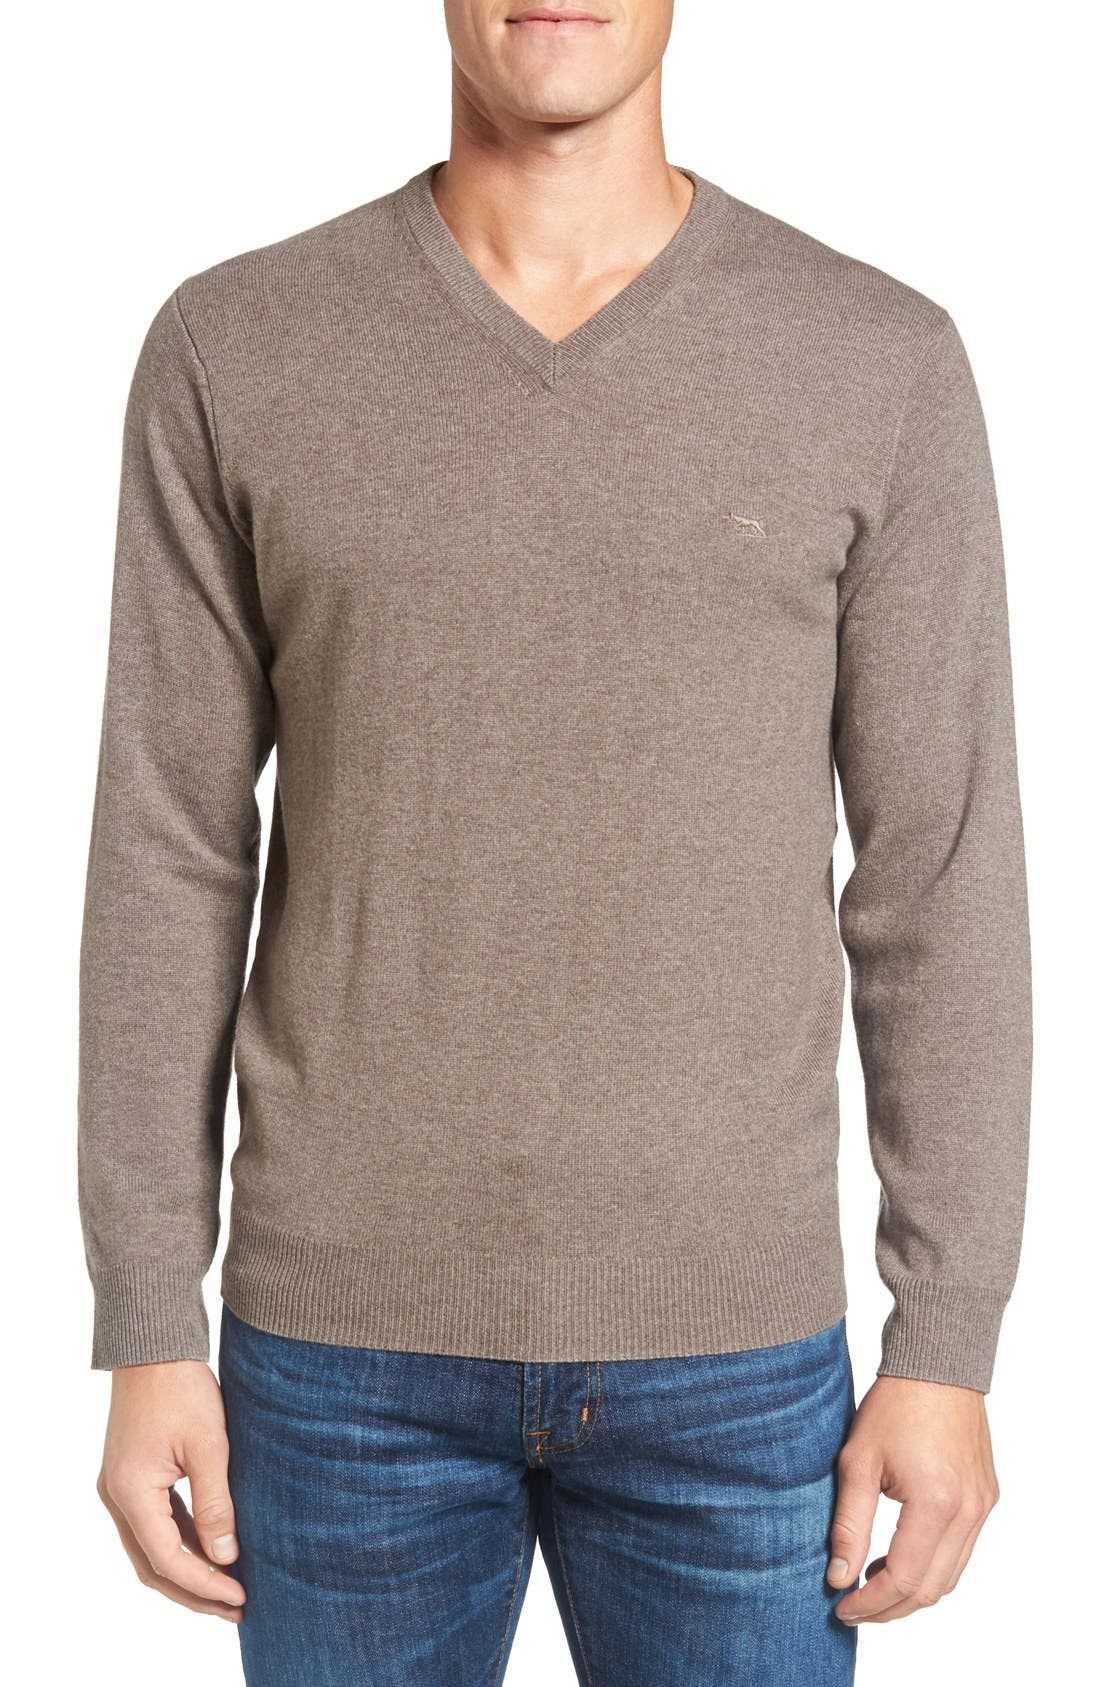 Main Image - Rodd & Gunn 'Inchbonnie' Wool & Cashmere V-Neck Sweater